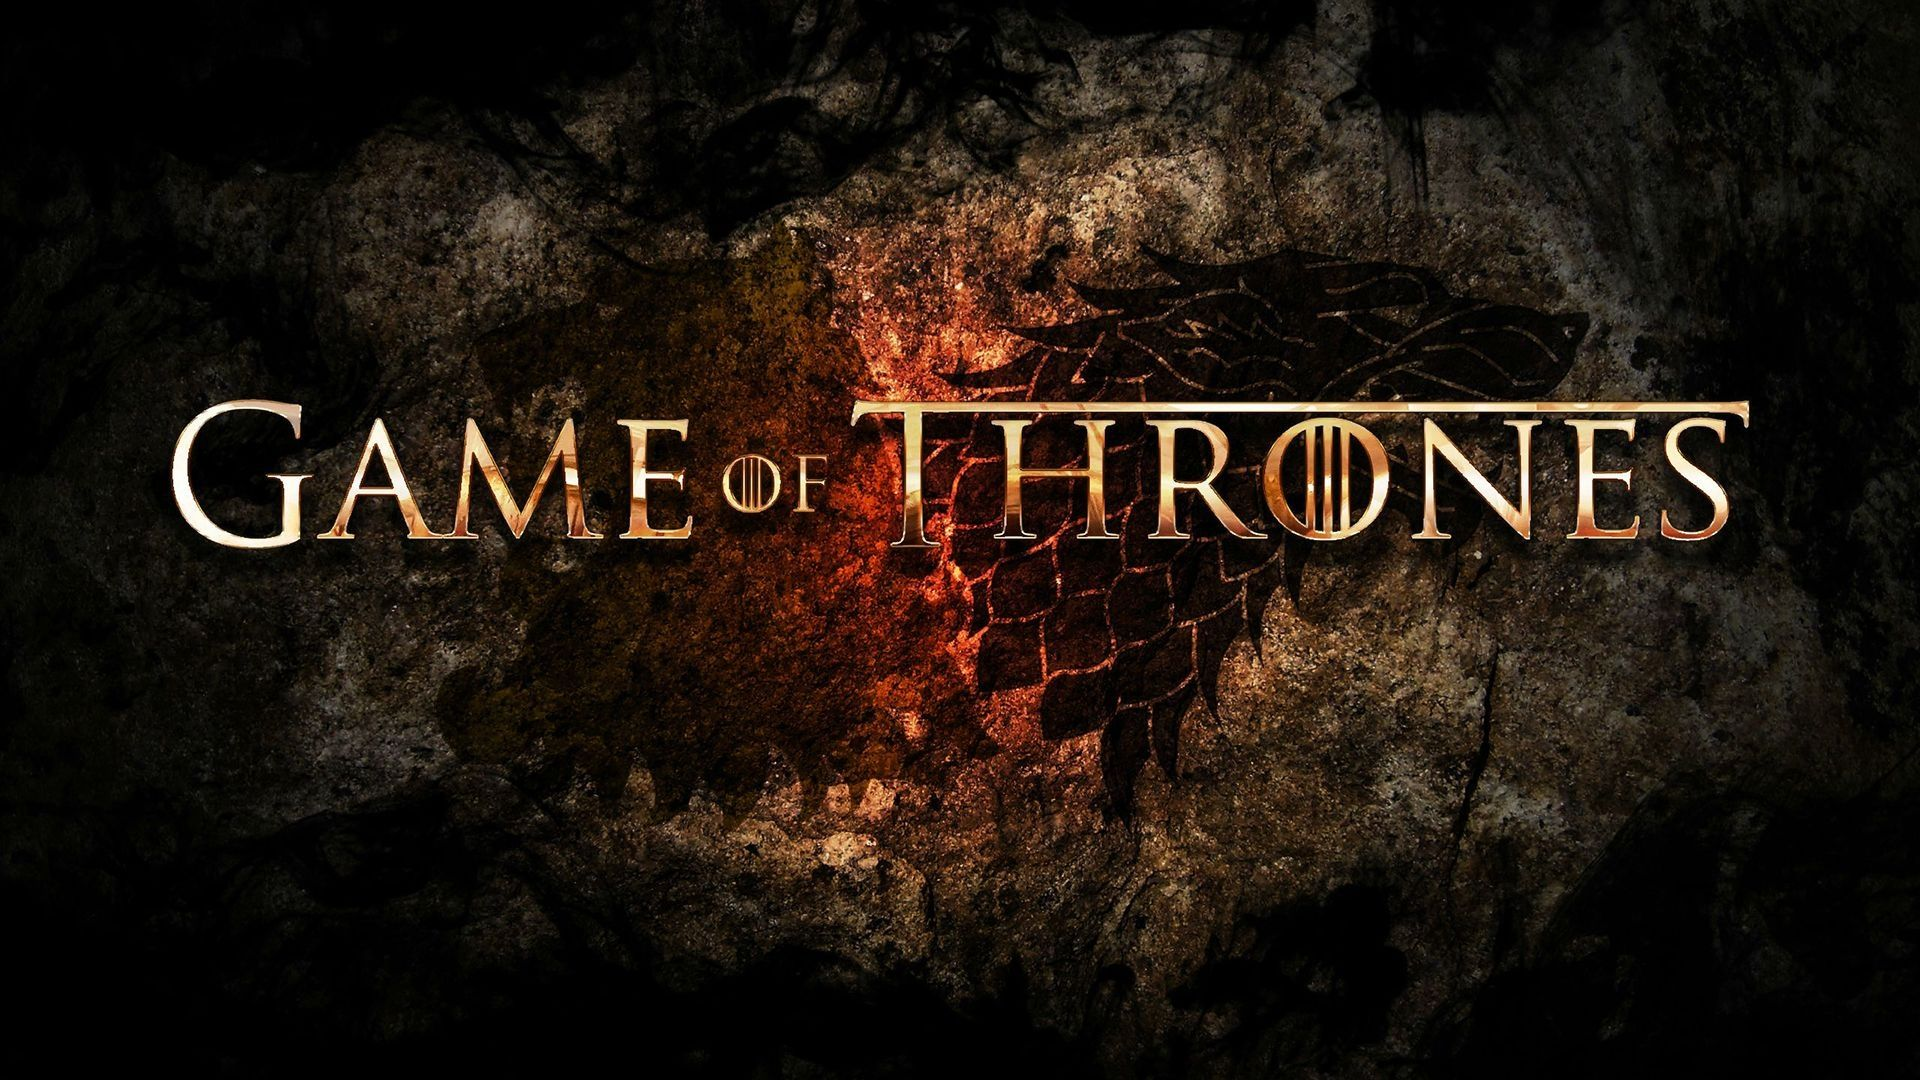 Game of Thrones hd wallpaper name